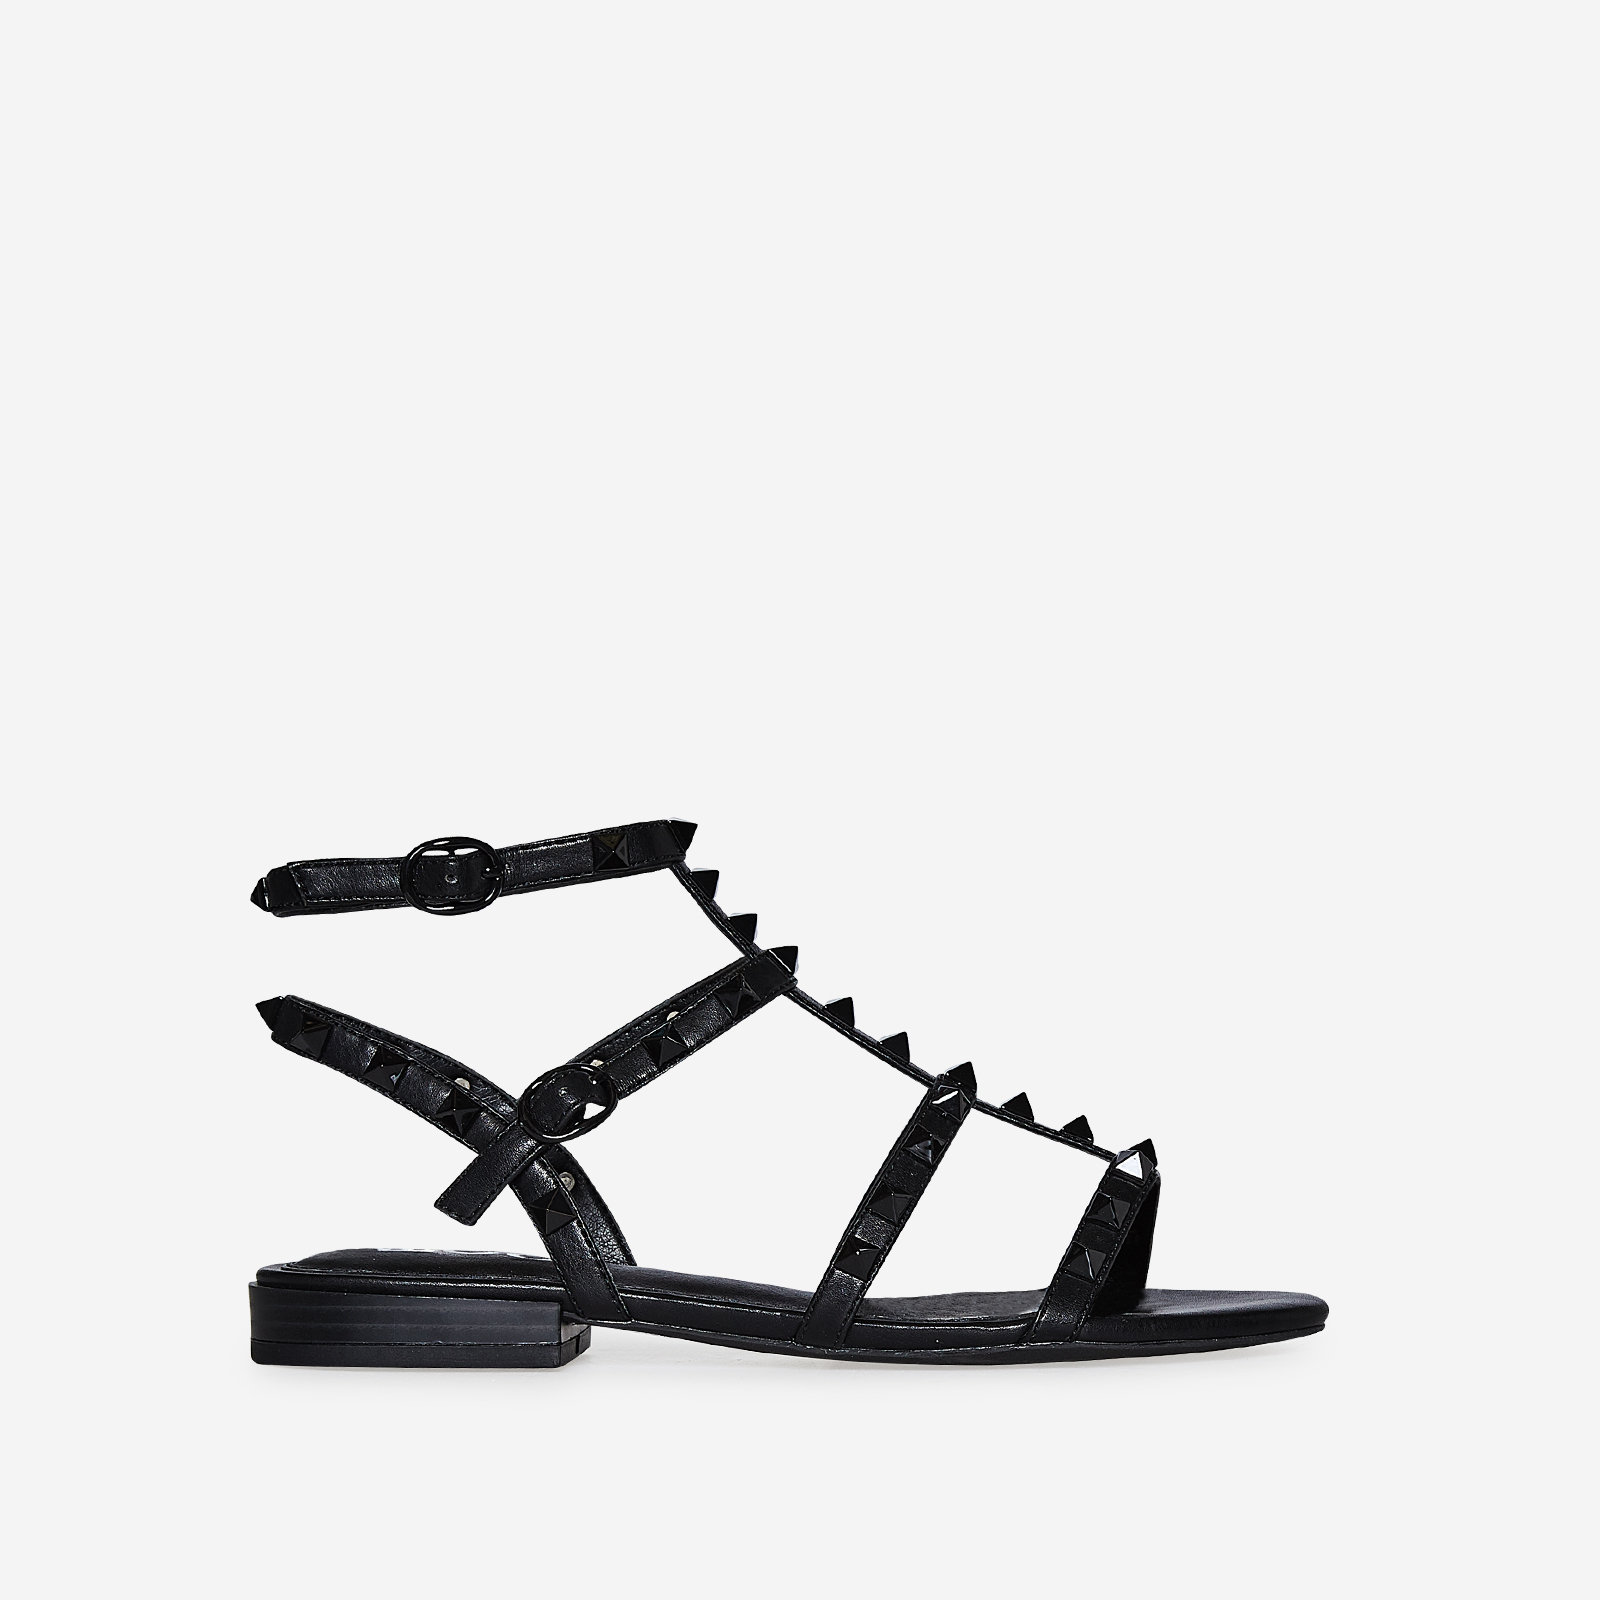 Paisley Studded Detail Gladiator Sandal In Black Faux Leather